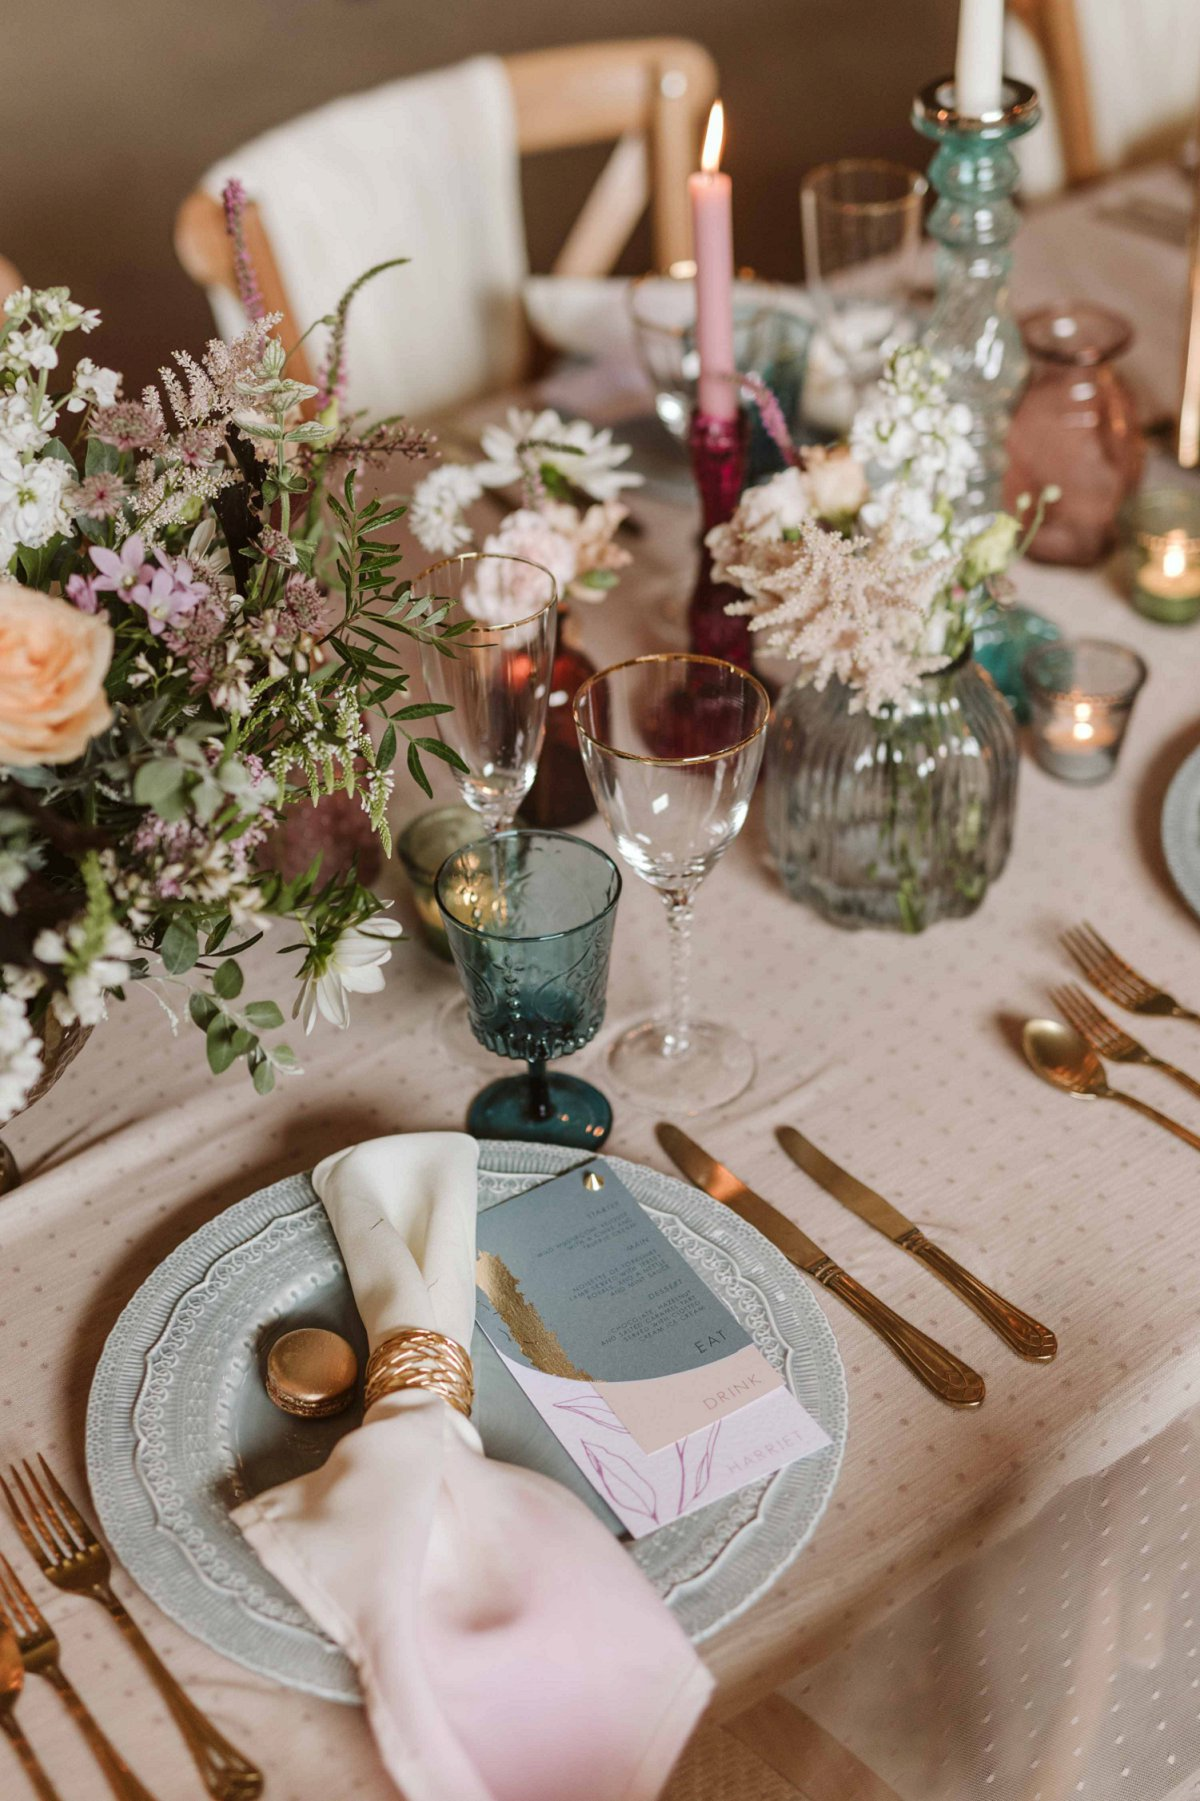 An Eclectic & Elegant Wedding Inspiration Shoot at Wold View Farm (c) Freya Raby Photography (36)